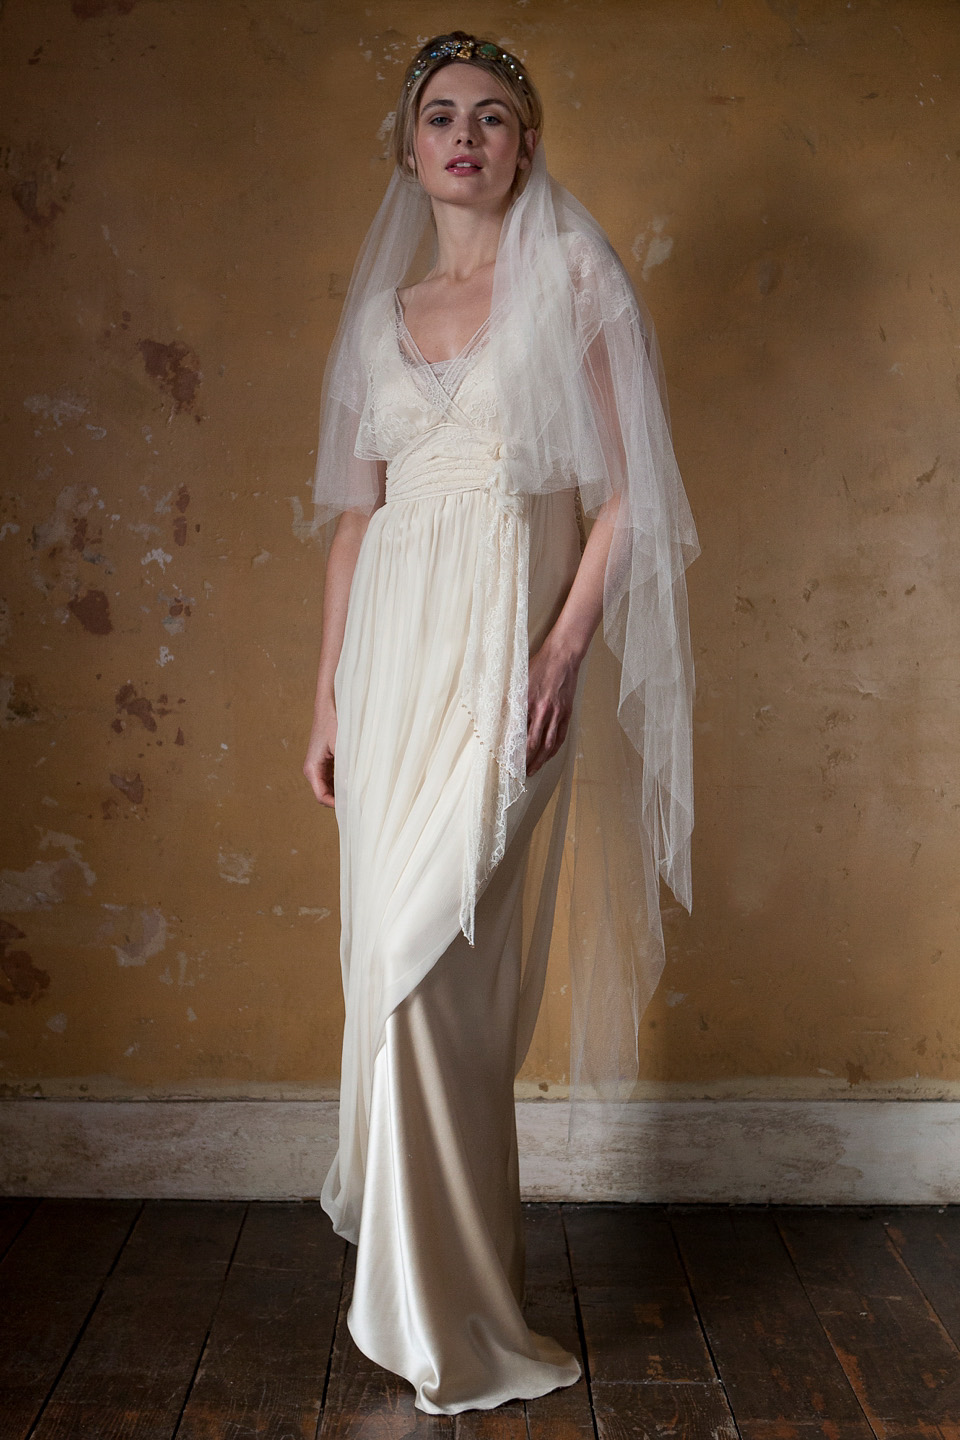 dbcfec5d961 wpid Sally Lacock bridal - Sally Lacock - Exquisite and Romantic Vintage  Style for the Modern